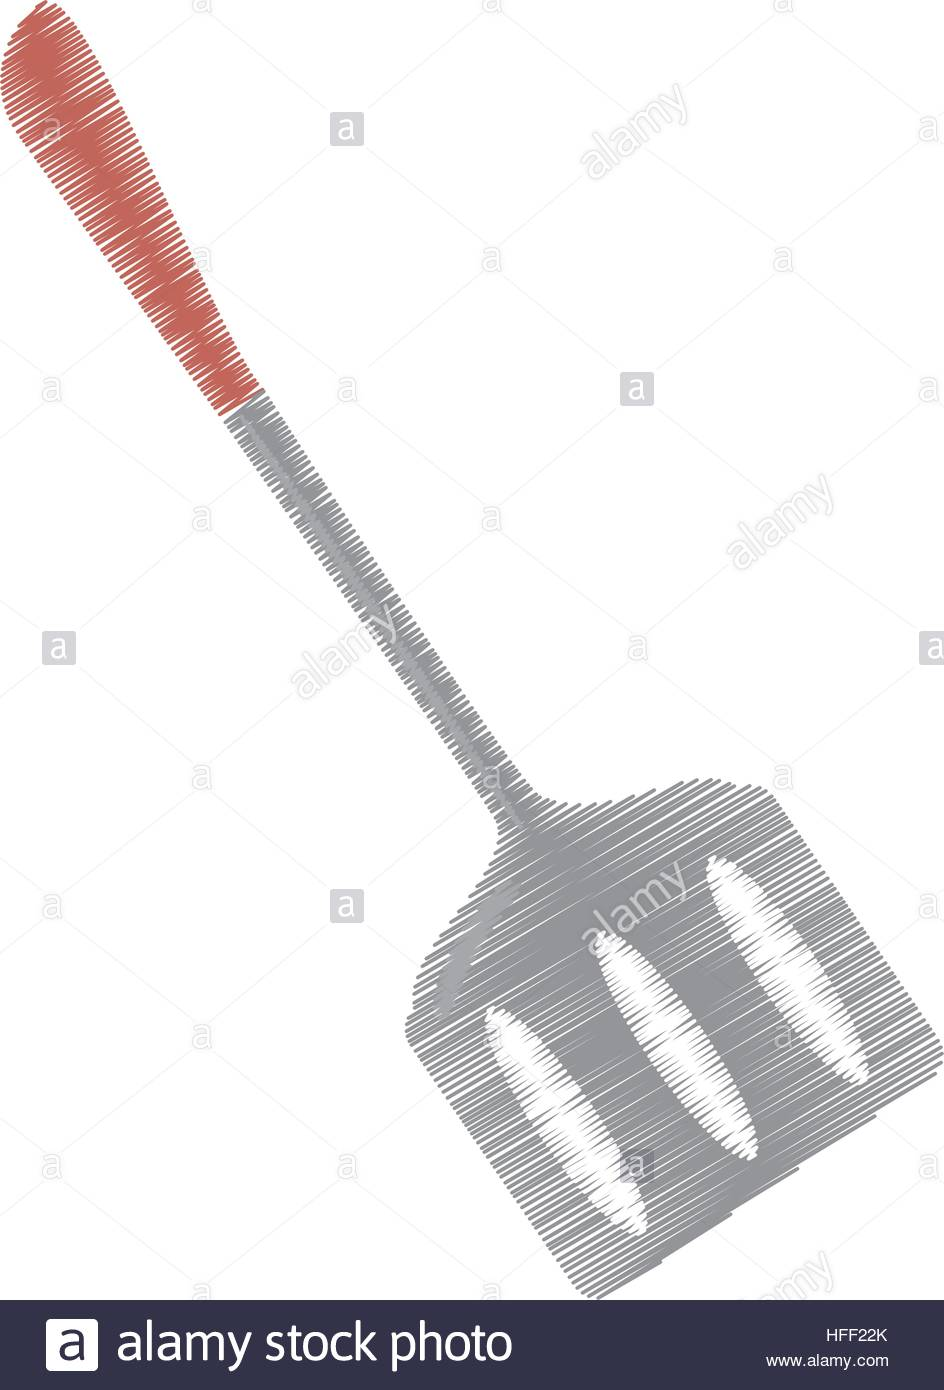 944x1390 Drawing Spatula Kitchen And Cooking Utensils Stock Vector Art